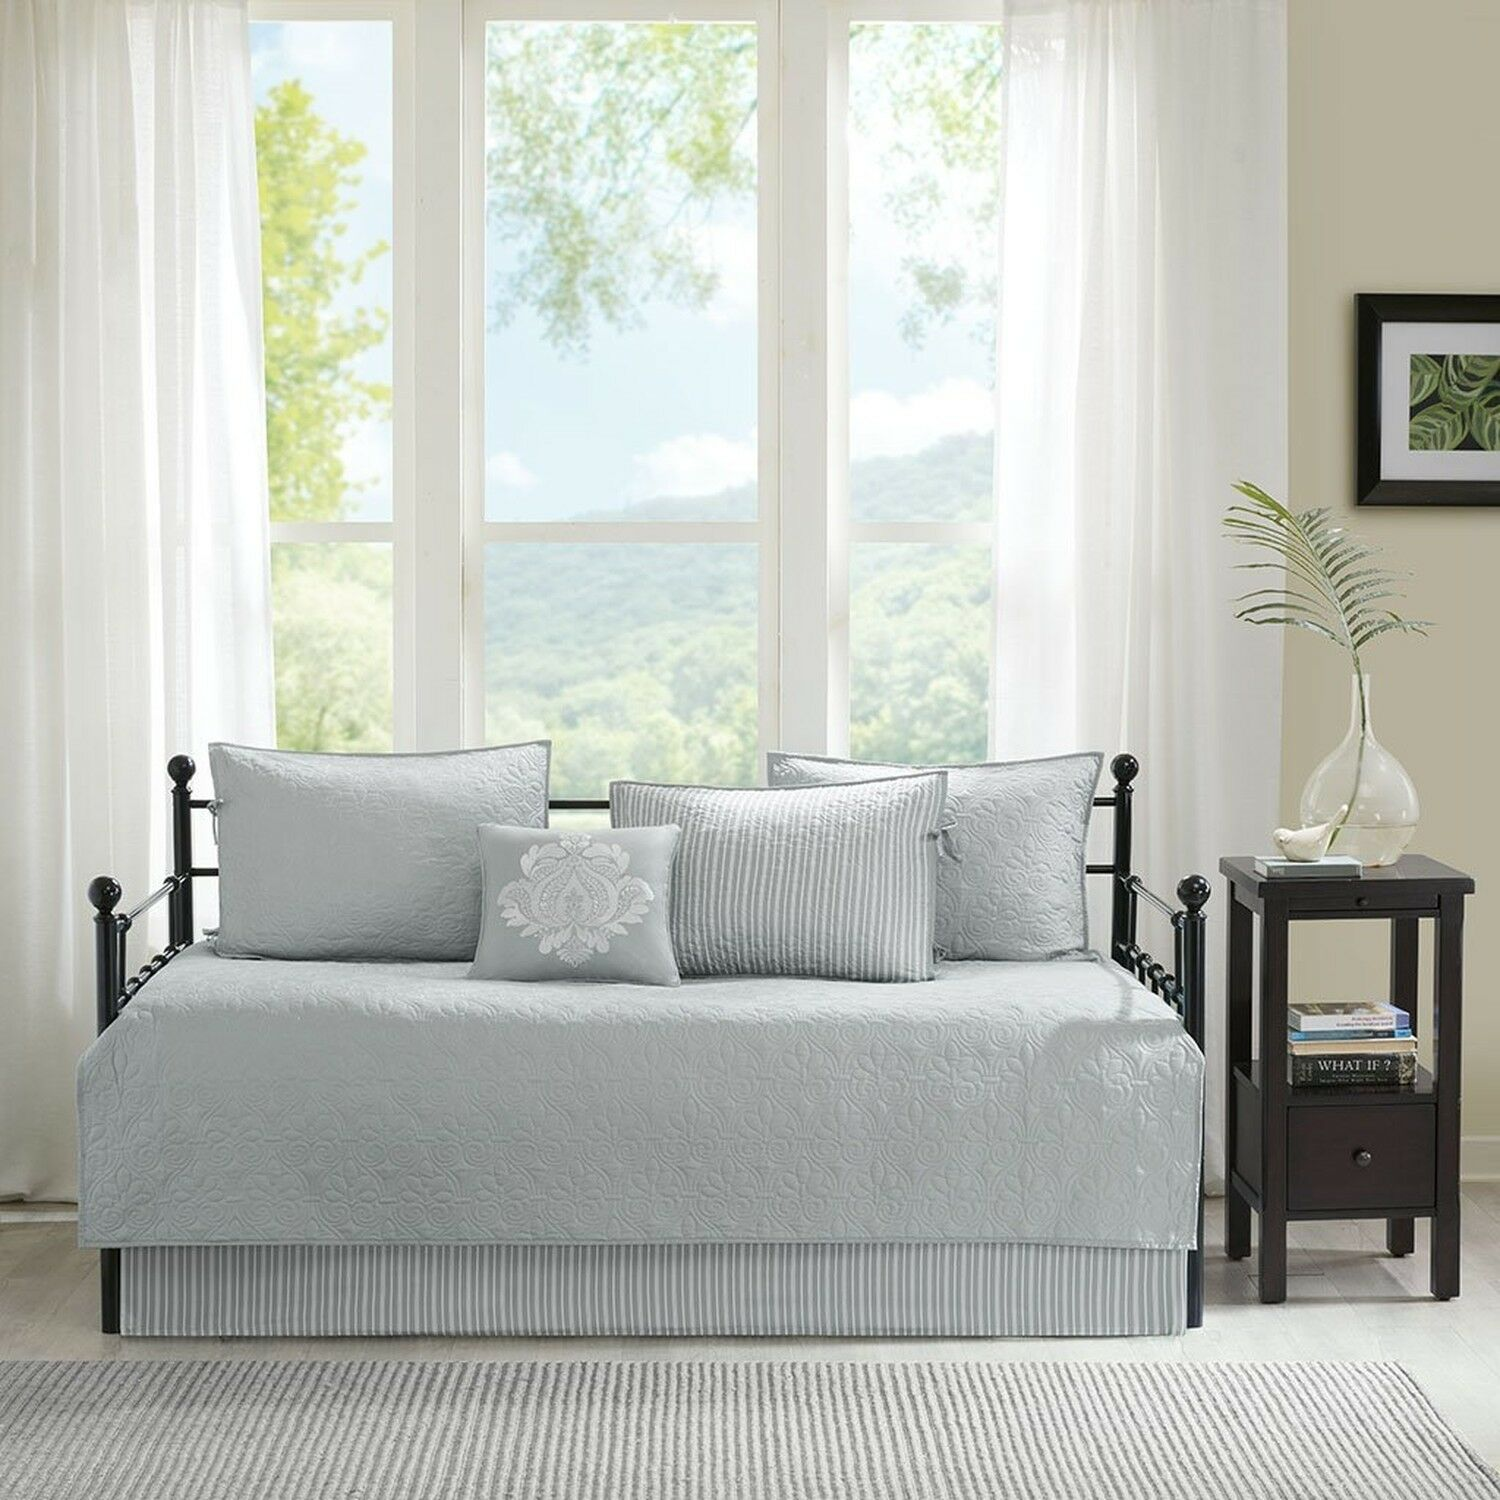 Madison Park Quebec Daybed Size Quilt Bedding Set - Grey, Damask – 6 Piece Be...